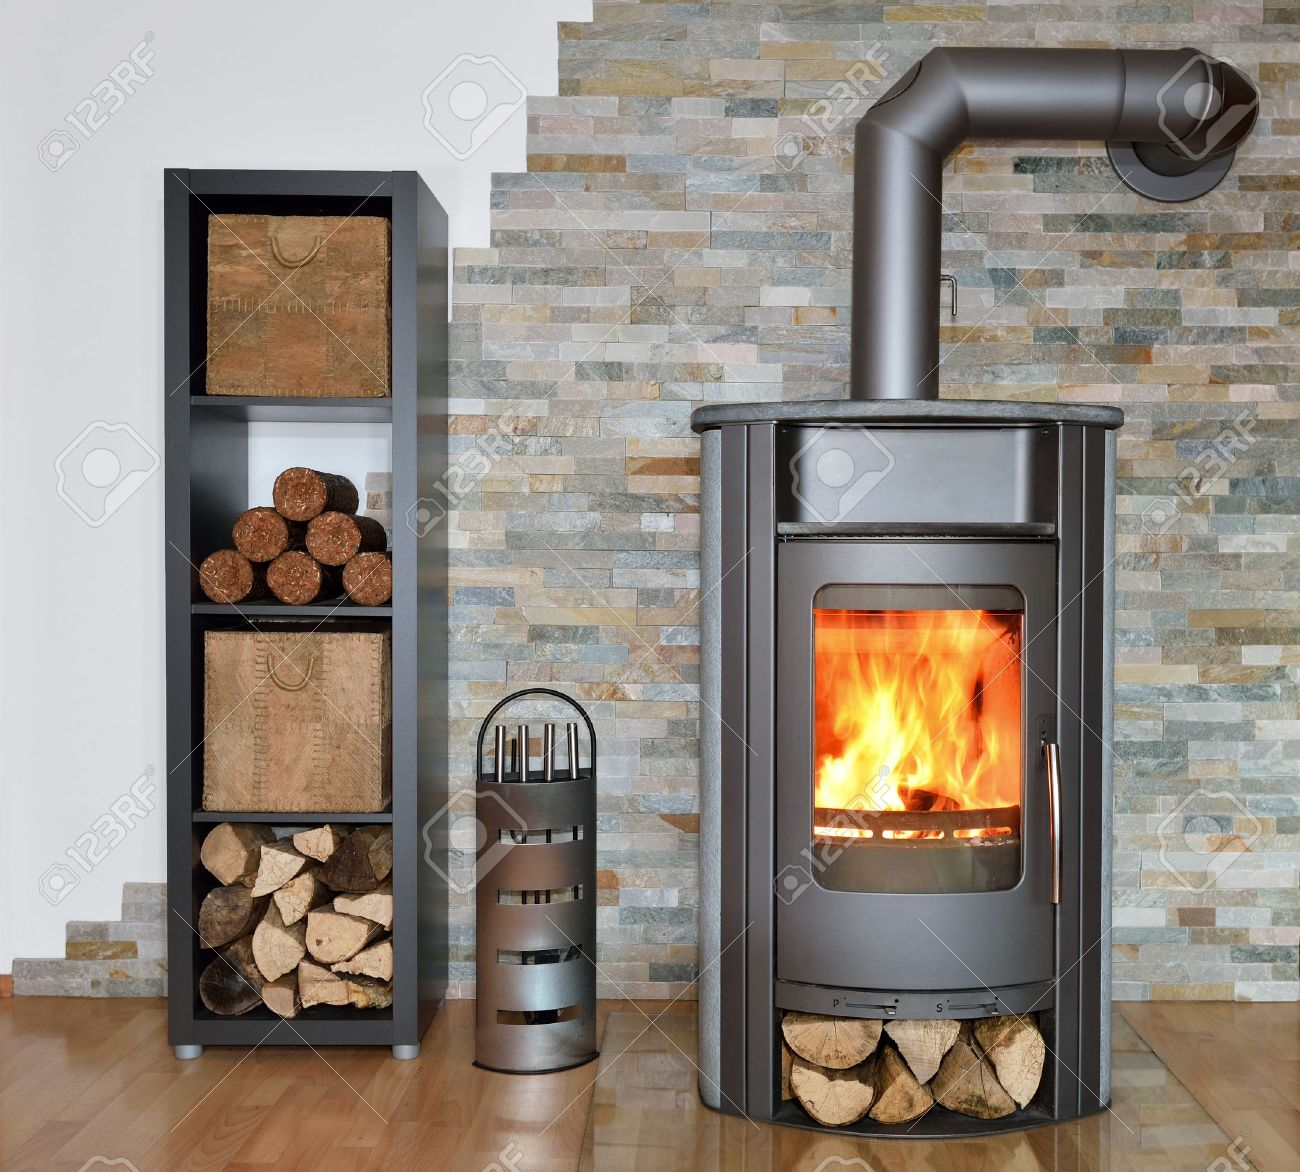 wood fired stove with fire wood fire irons and briquettes from